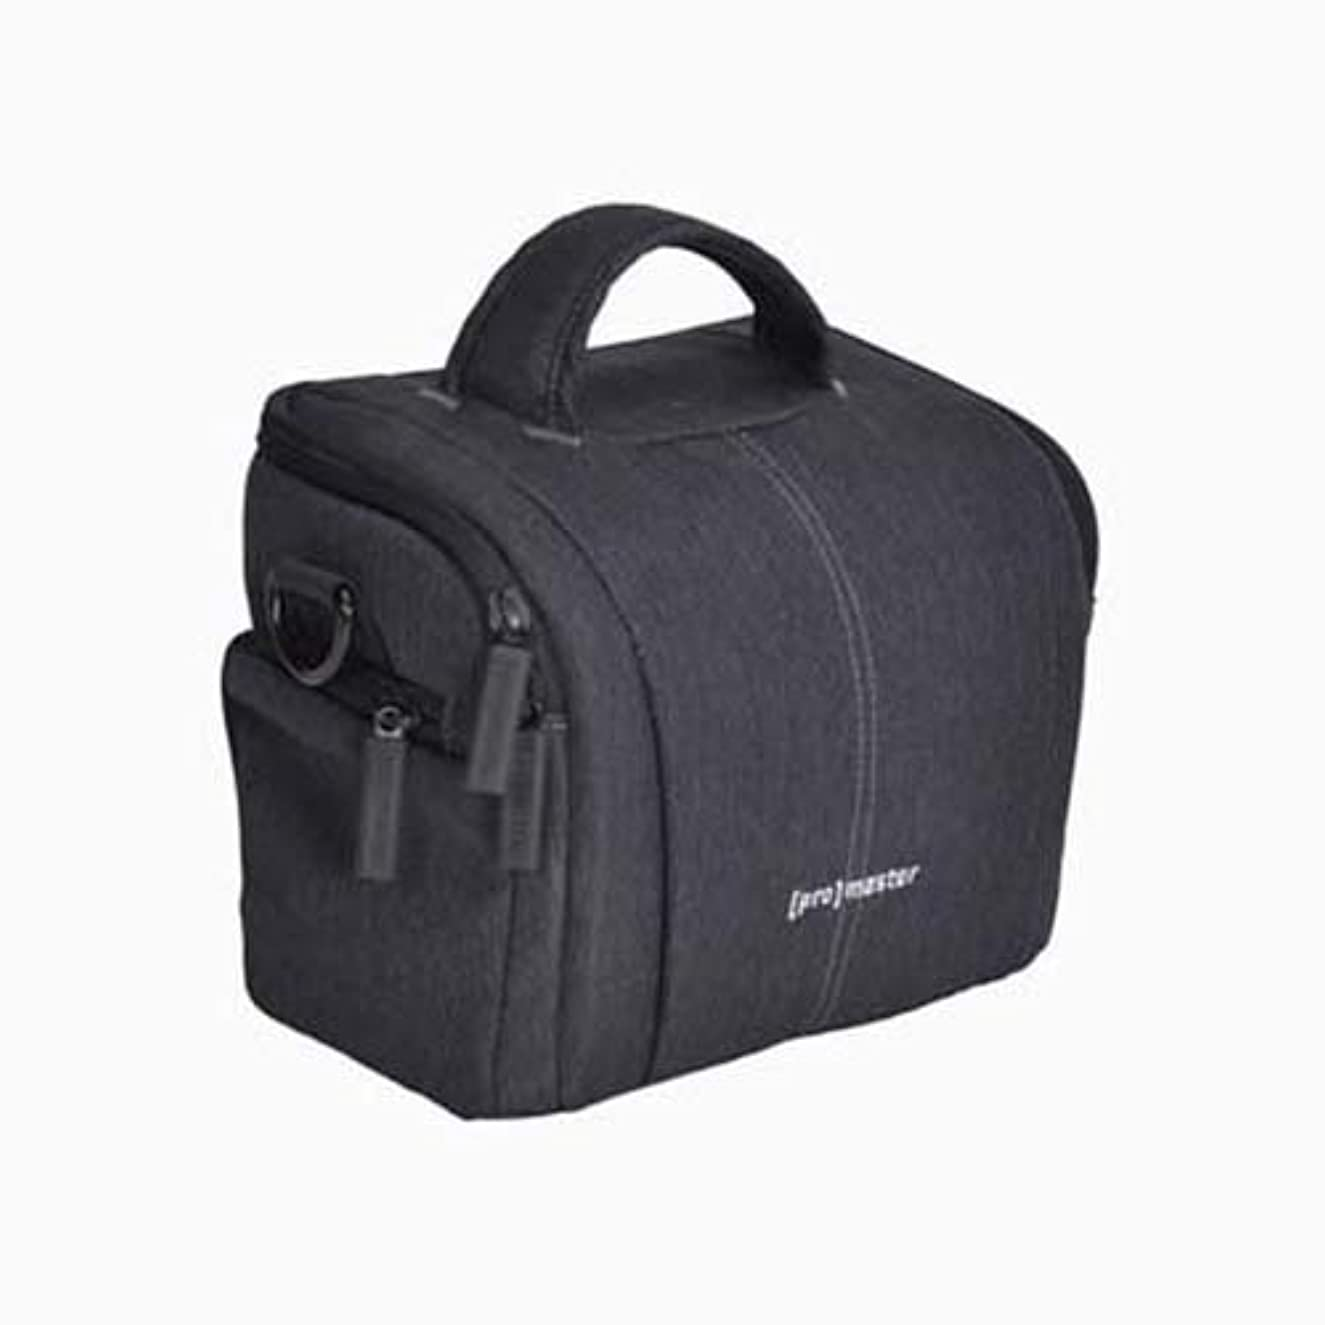 Promaster Cityscape 30 Camera Gear Bag (Charcoal Grey)